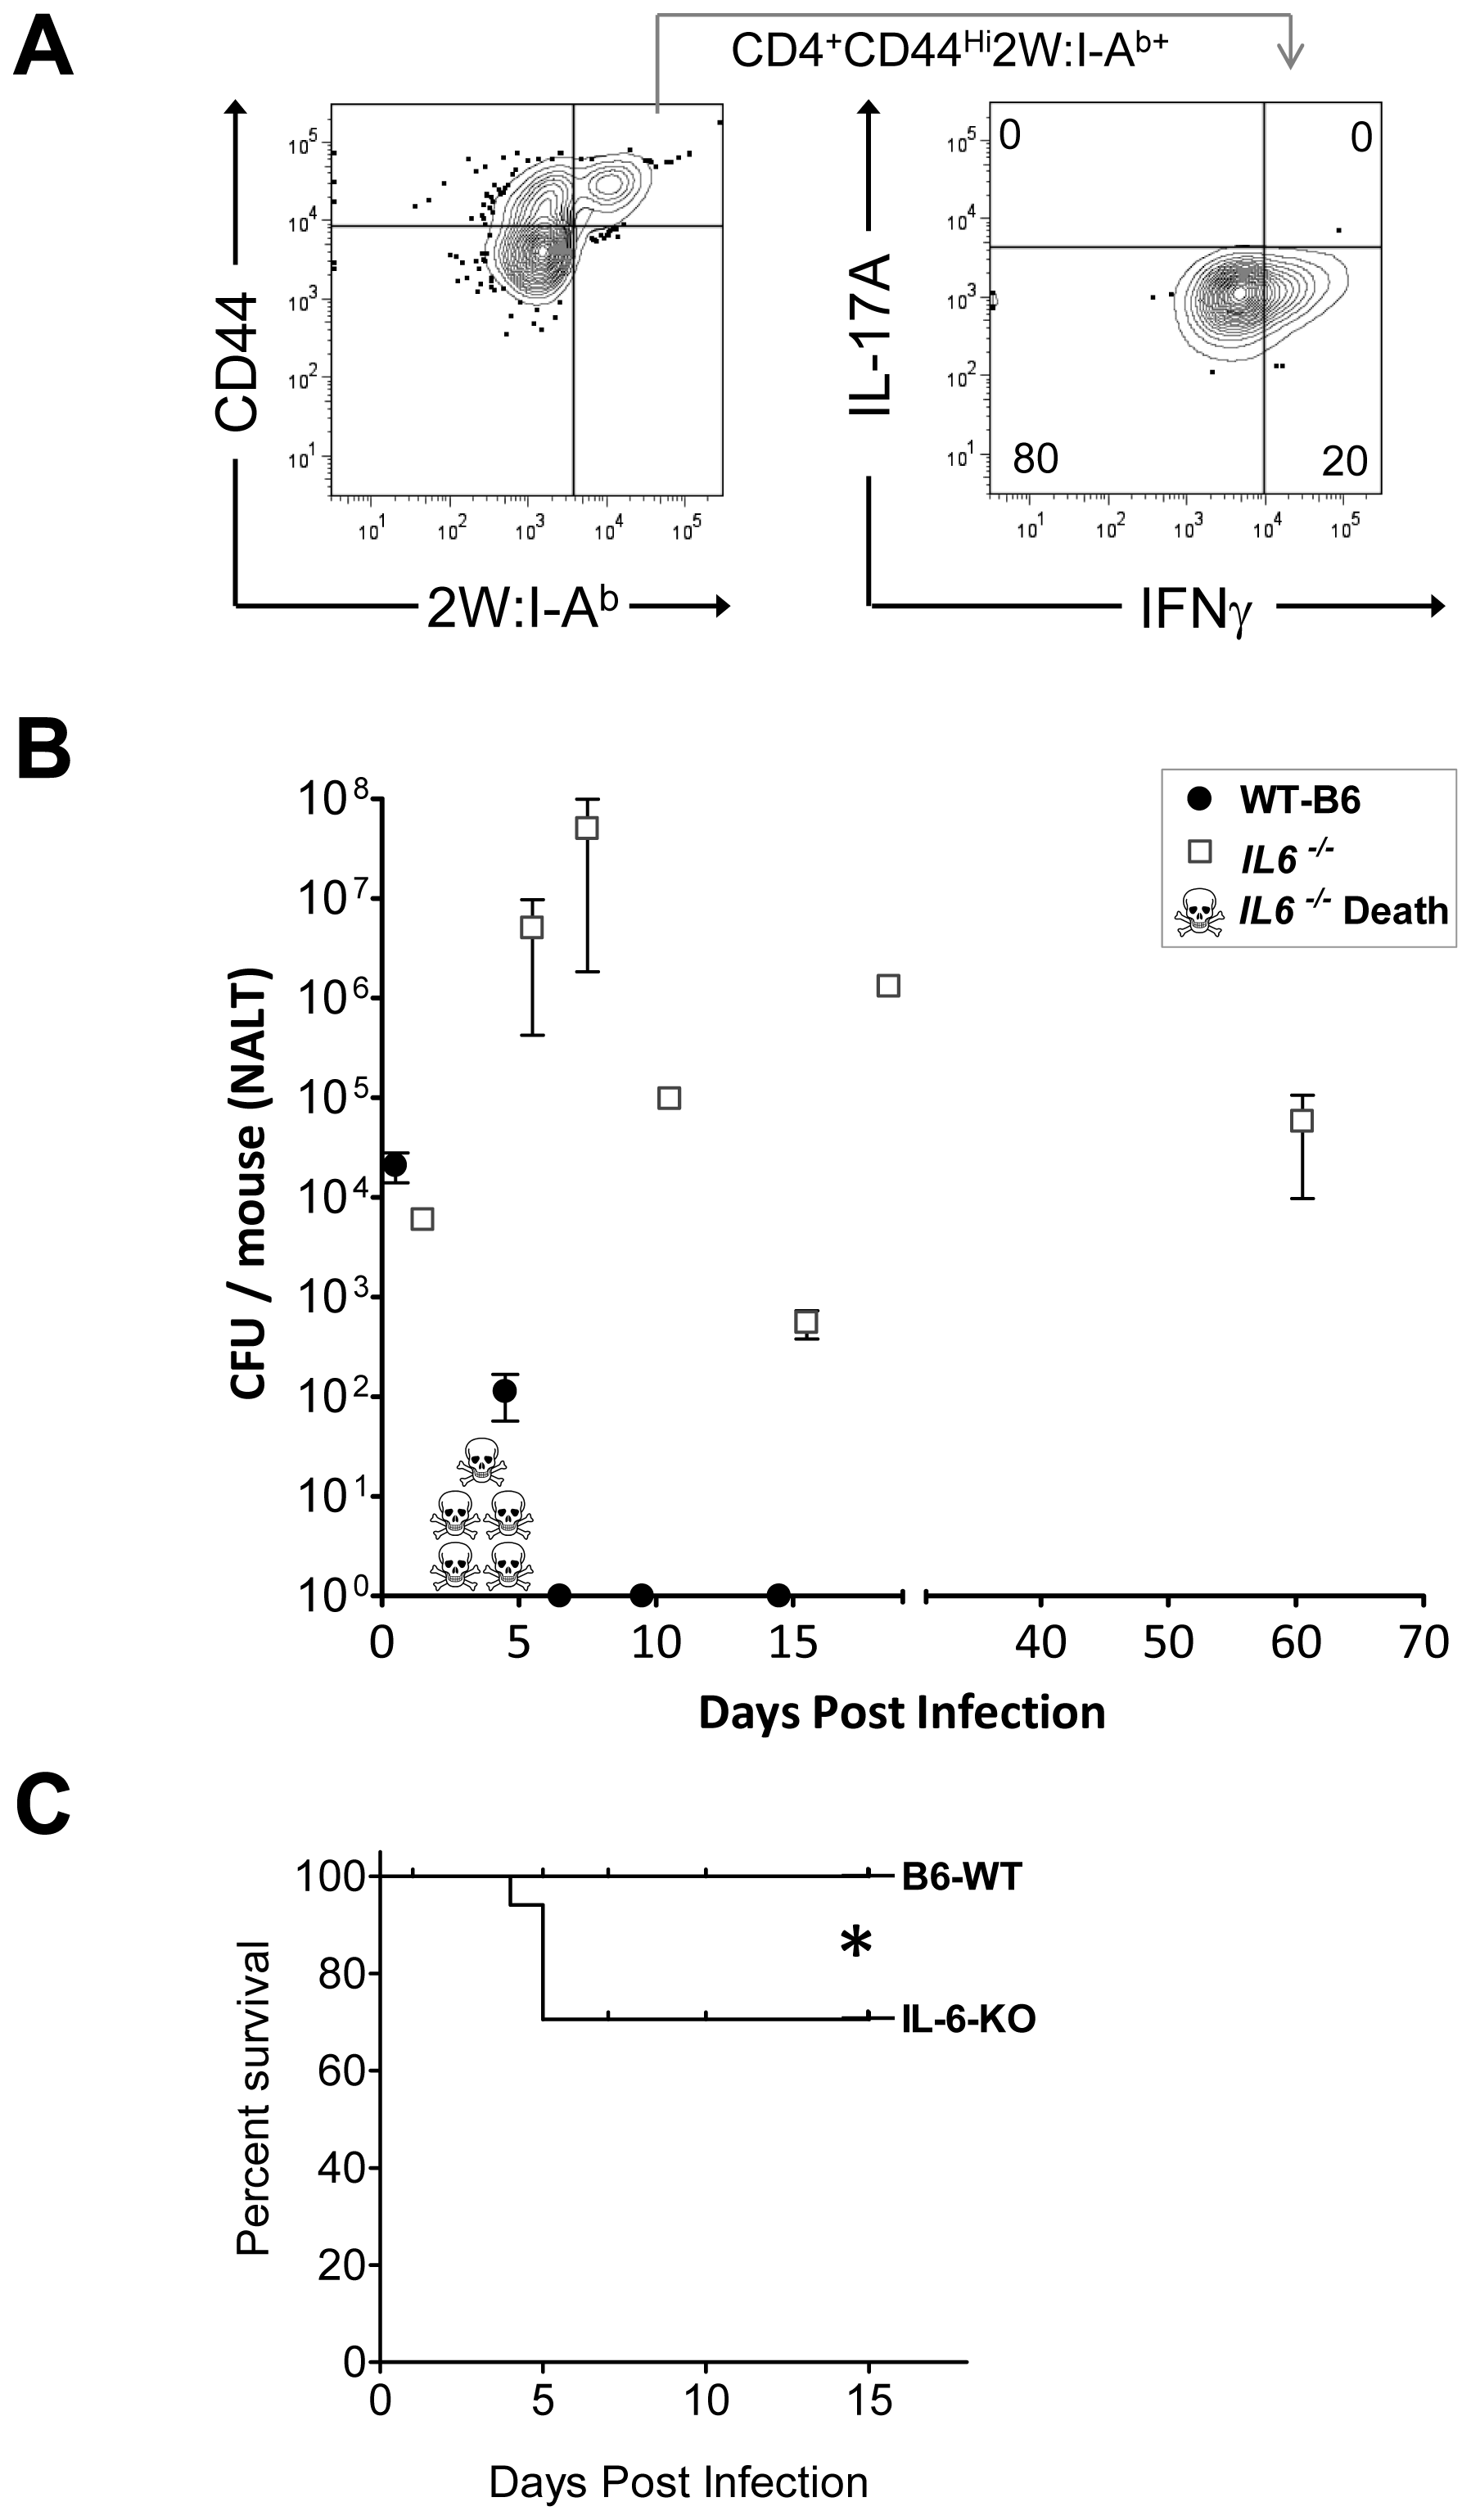 Mice deficient in Th17 cells fail to clear primary GAS infections from NALT and become chronic carriers.